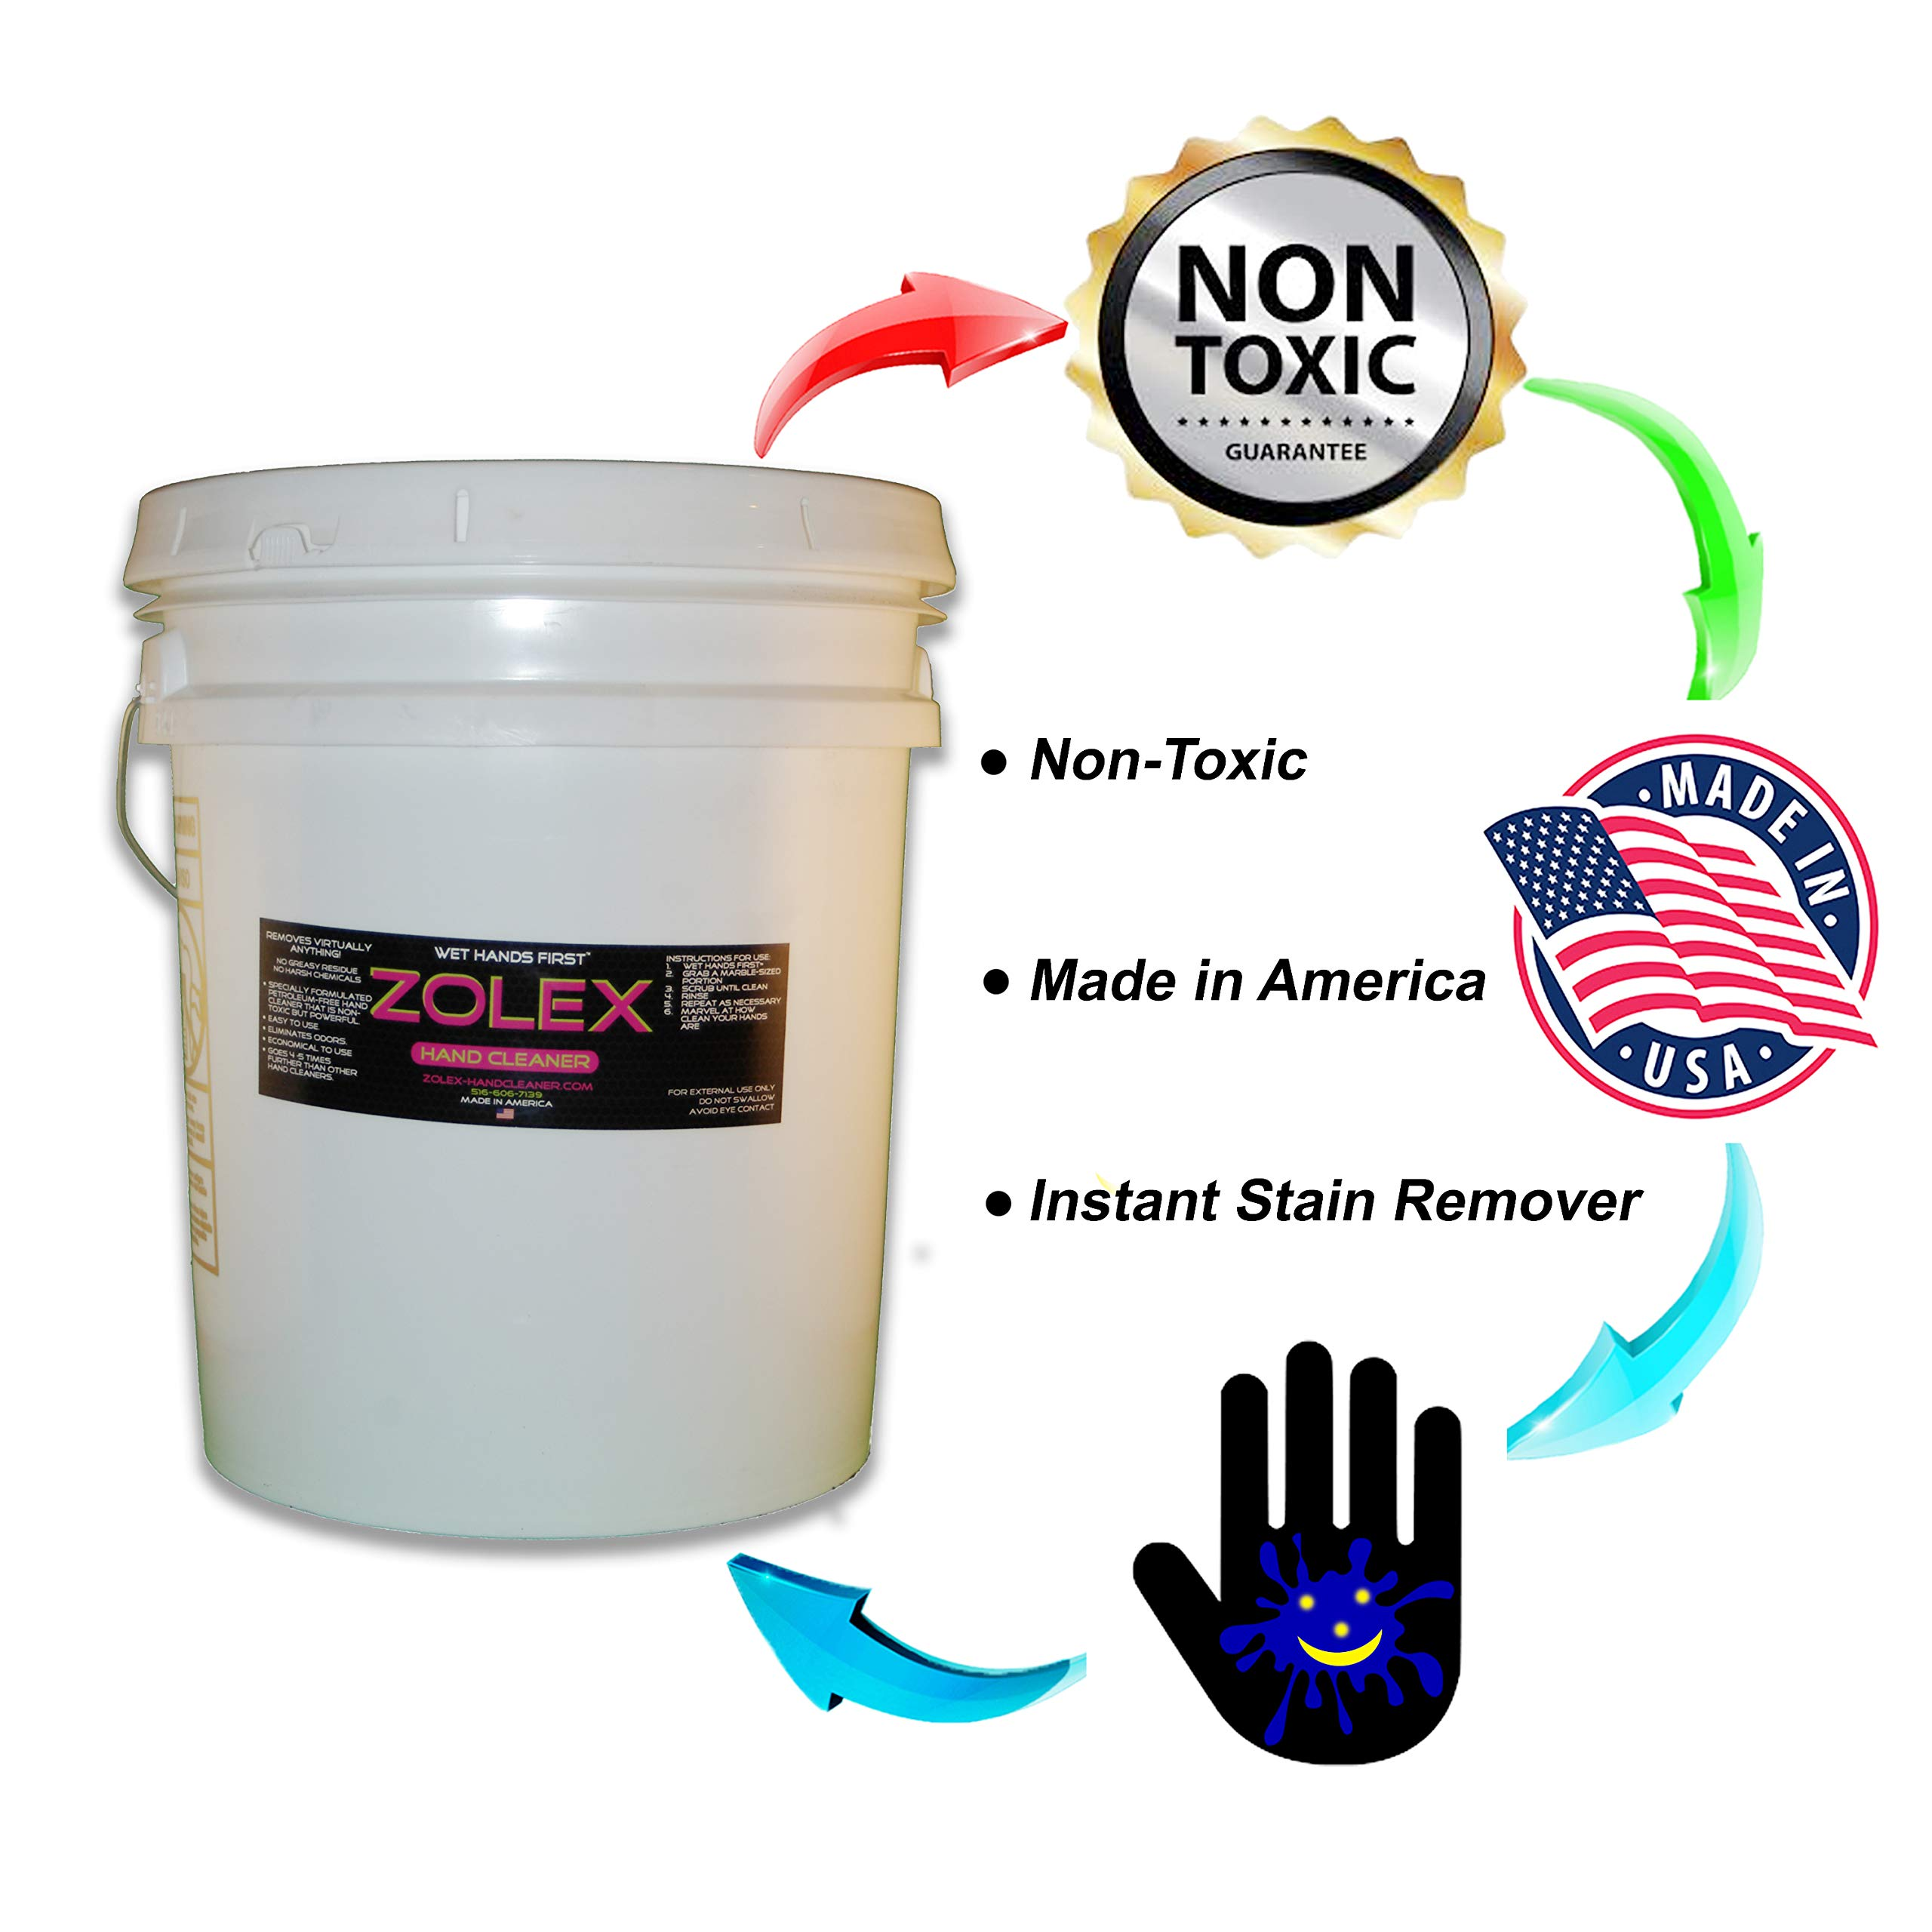 Zolex Water Activated Hand Cleaner for Working Hands| Stain Remover for Heavy Duty Workers | Grease Remover for Auto Mechanics - Non-Toxic Petroleum Free | Commercial-Sized Pail (12 lb) by Zolex (Image #3)